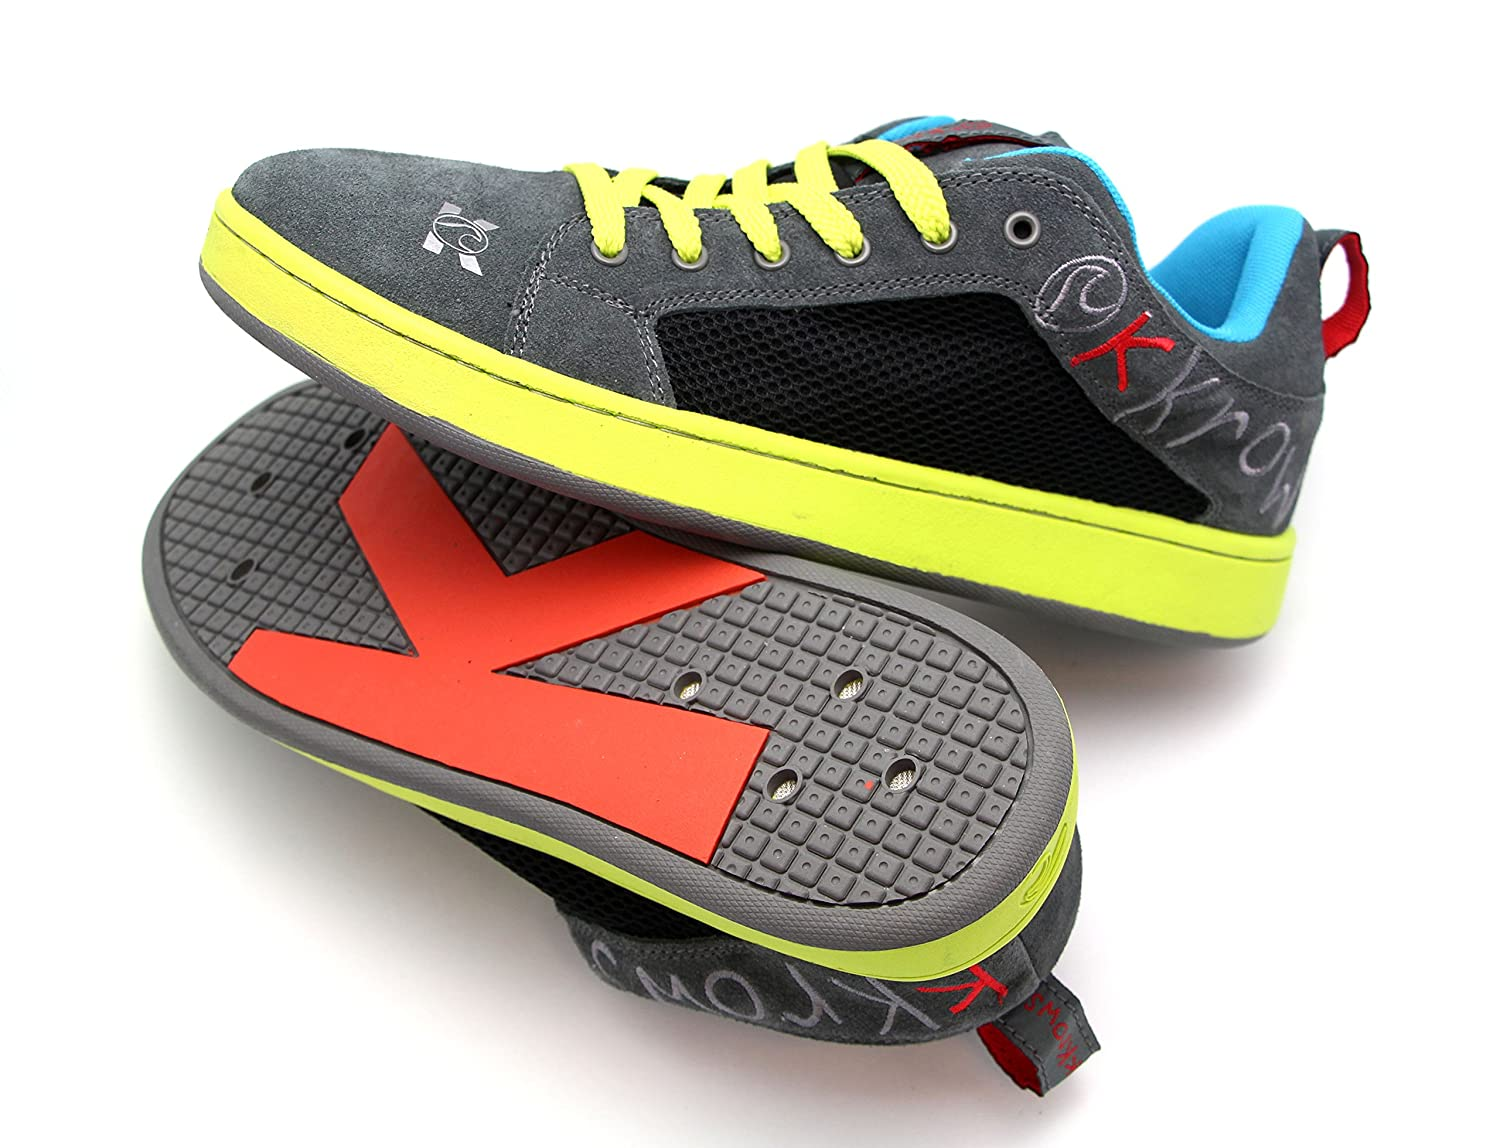 kKrows Liquid Krow Water Sport Shoes, Grey and Green, Size 11-12 B00O2YDSN6 Parent